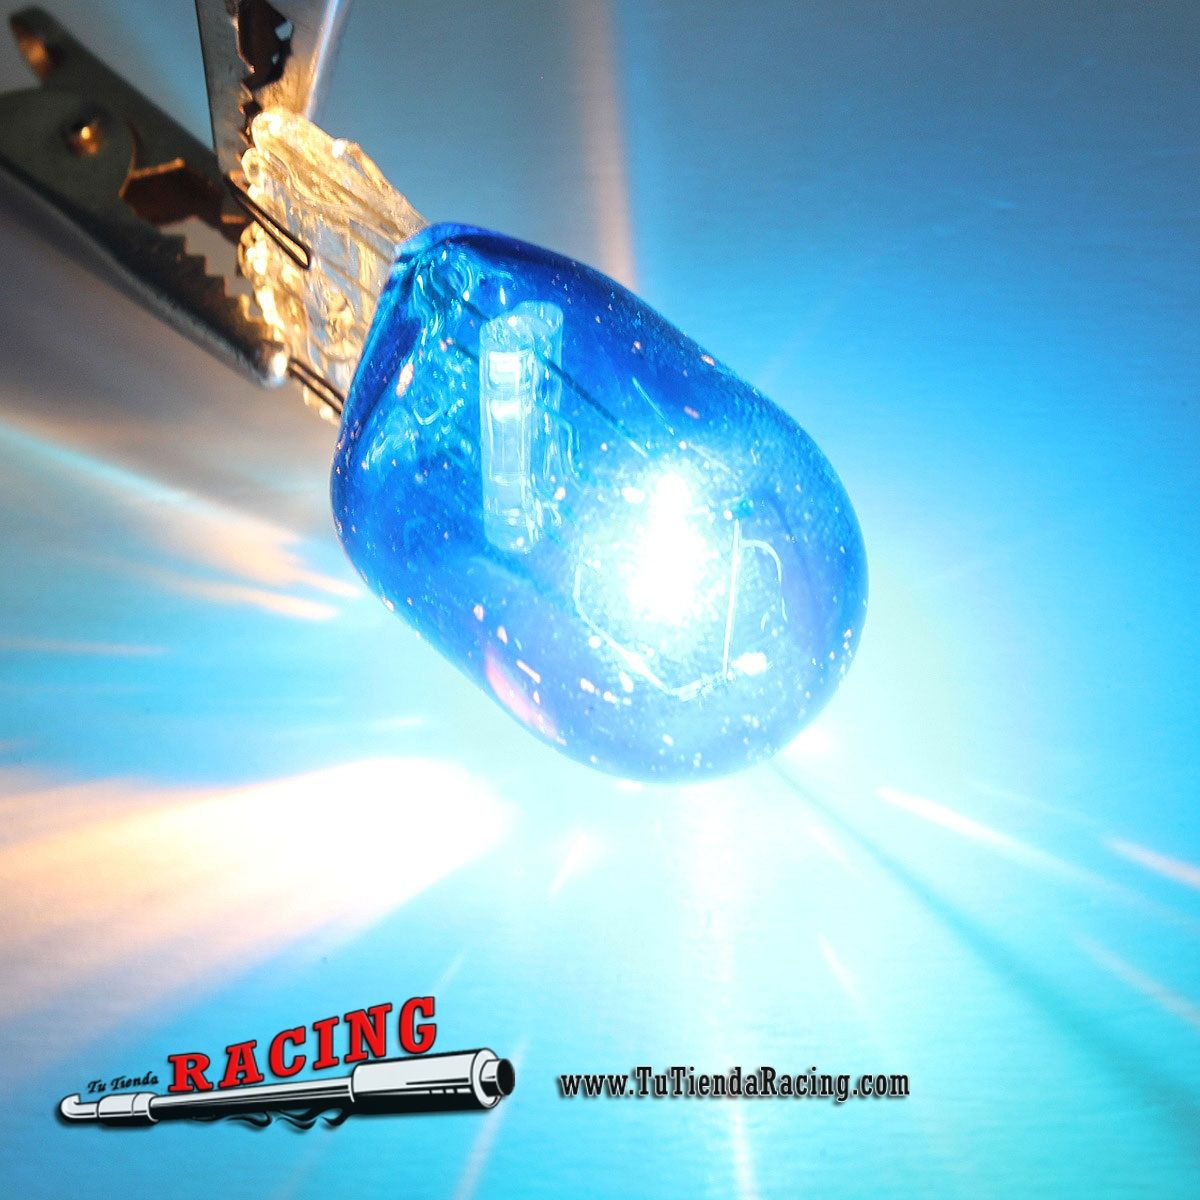 Bombilla Led W21 5w T20 580 7443 Xenon Luz Interior Antinieblas Intermitentes Coche Color Azul 2 96 Tutiendaracin Bombillas Bombillas Led Luces Interiores